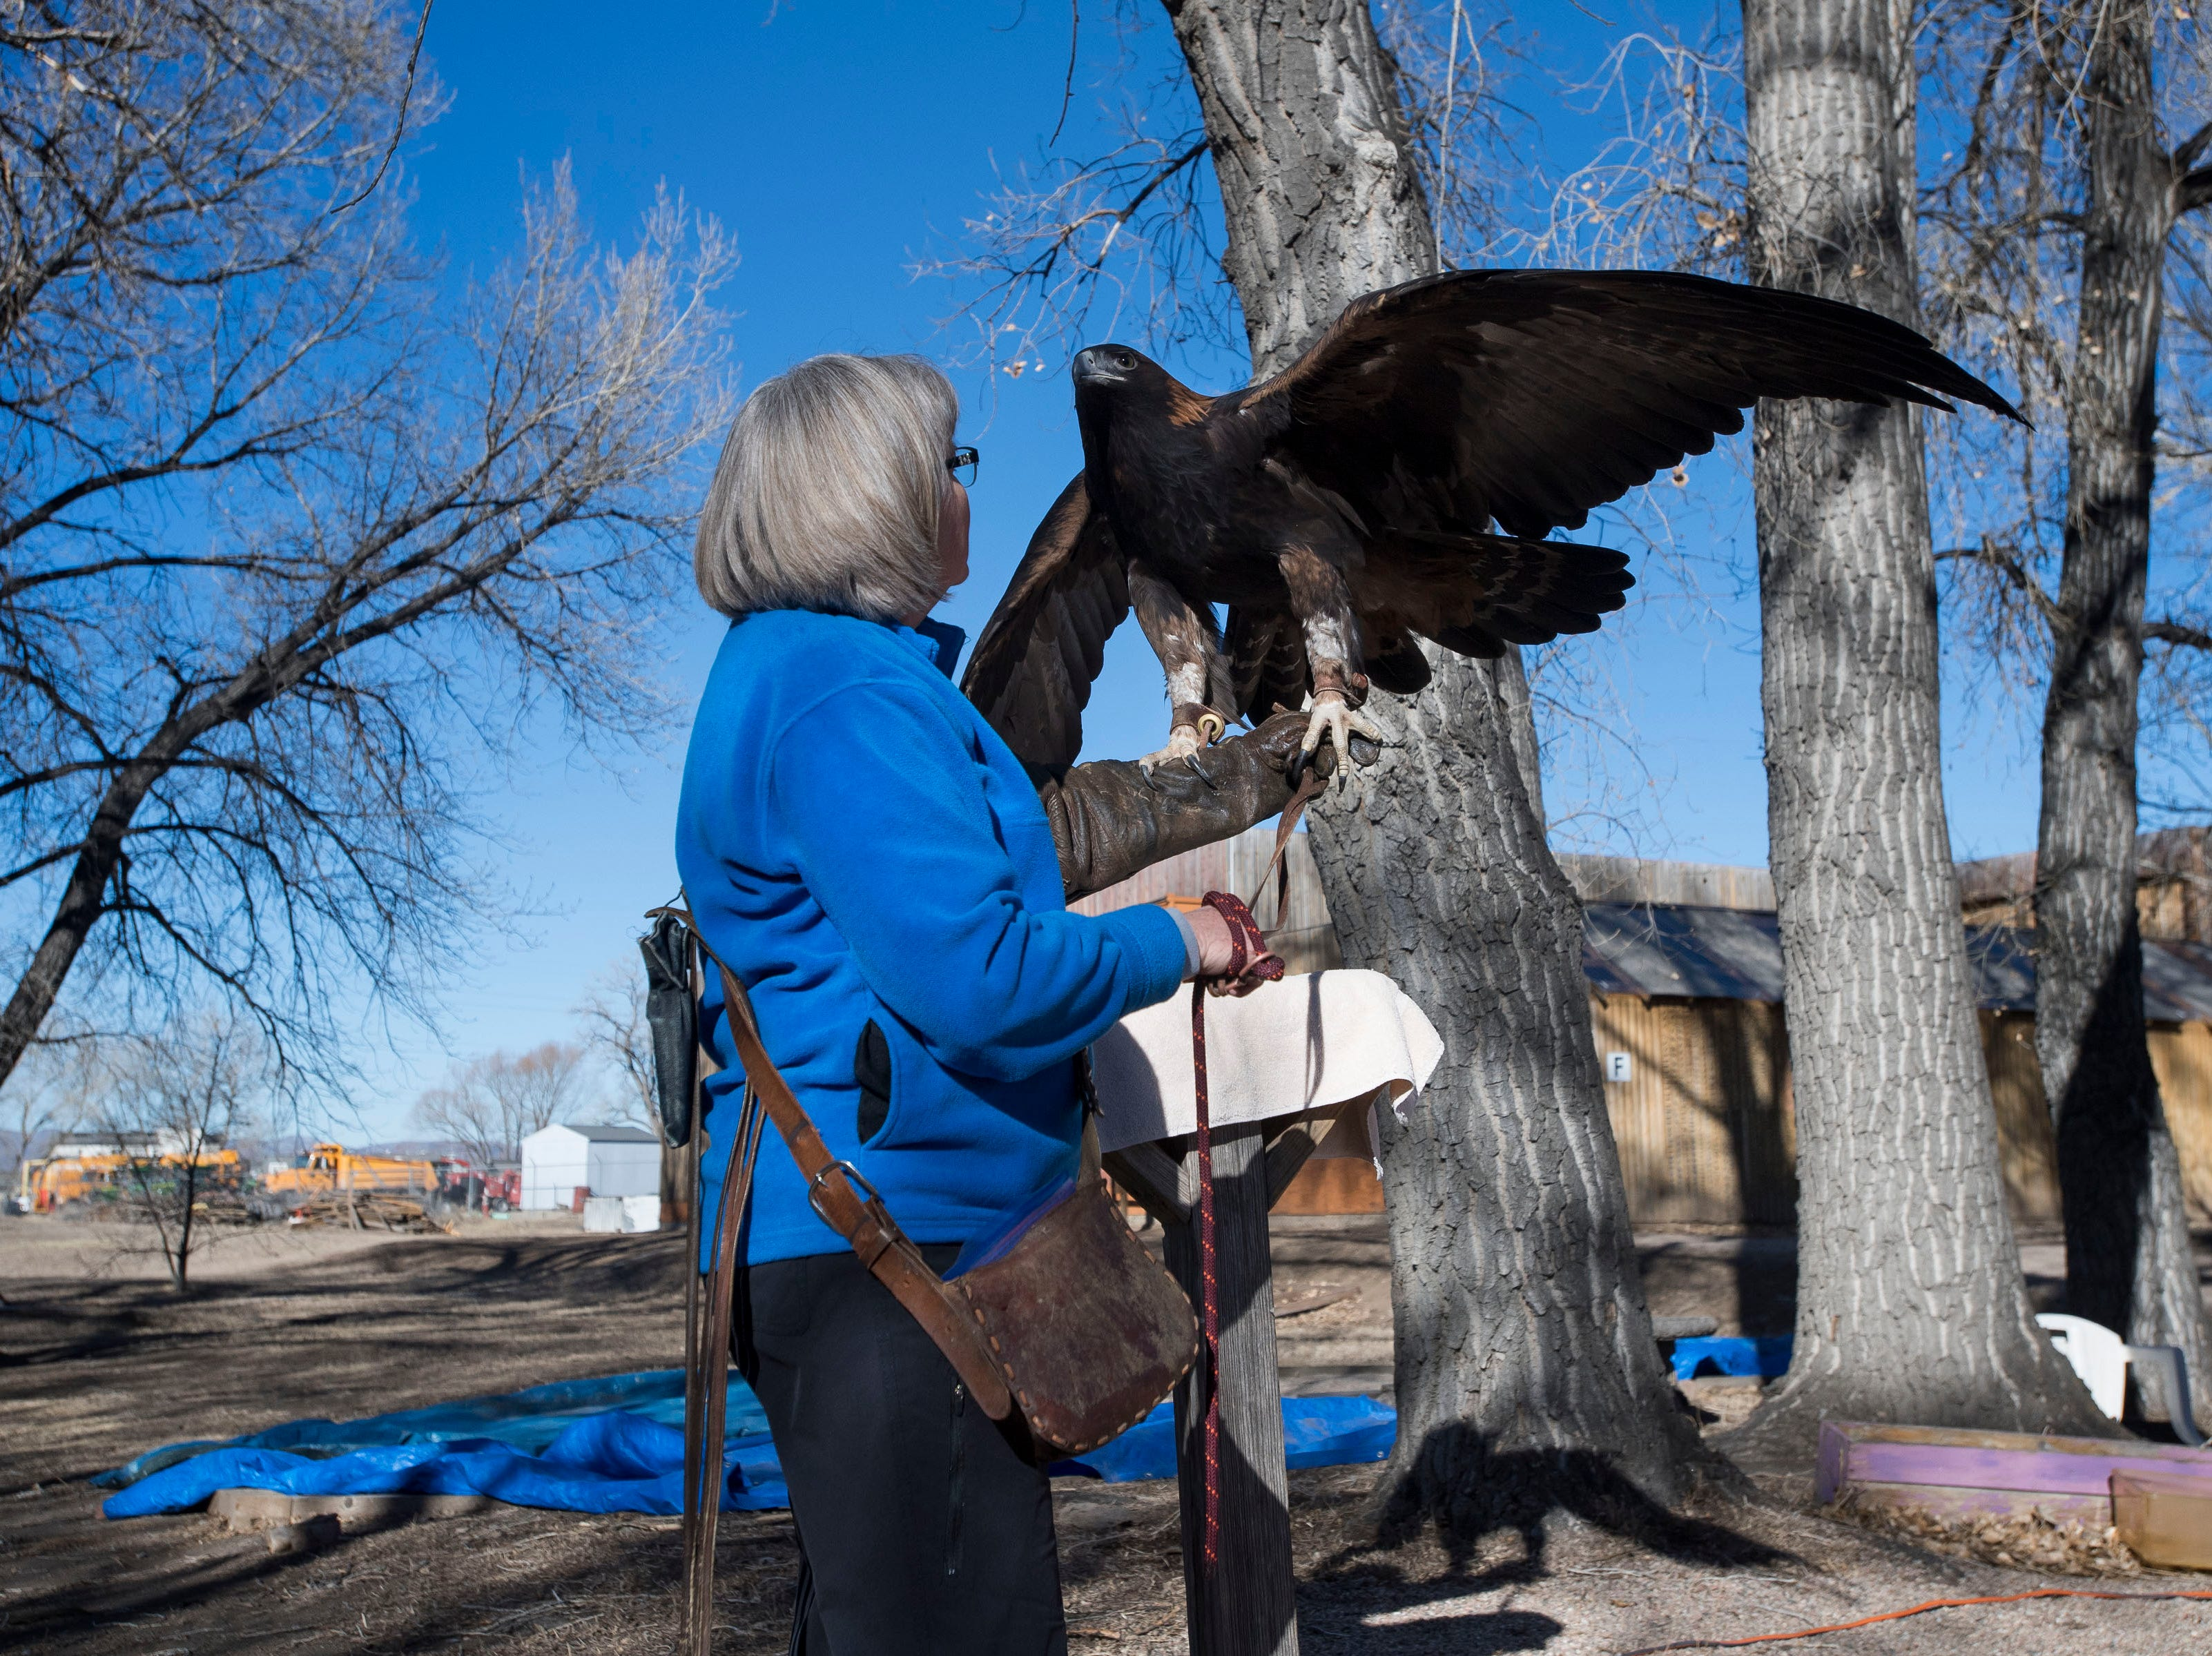 Handler Heidi Lyons holds an educational golden eagle while giving the raptor some time outside on Friday, Feb. 1, 2019, at the Rocky Mountain Raptor Program in Fort Collins, Colo.